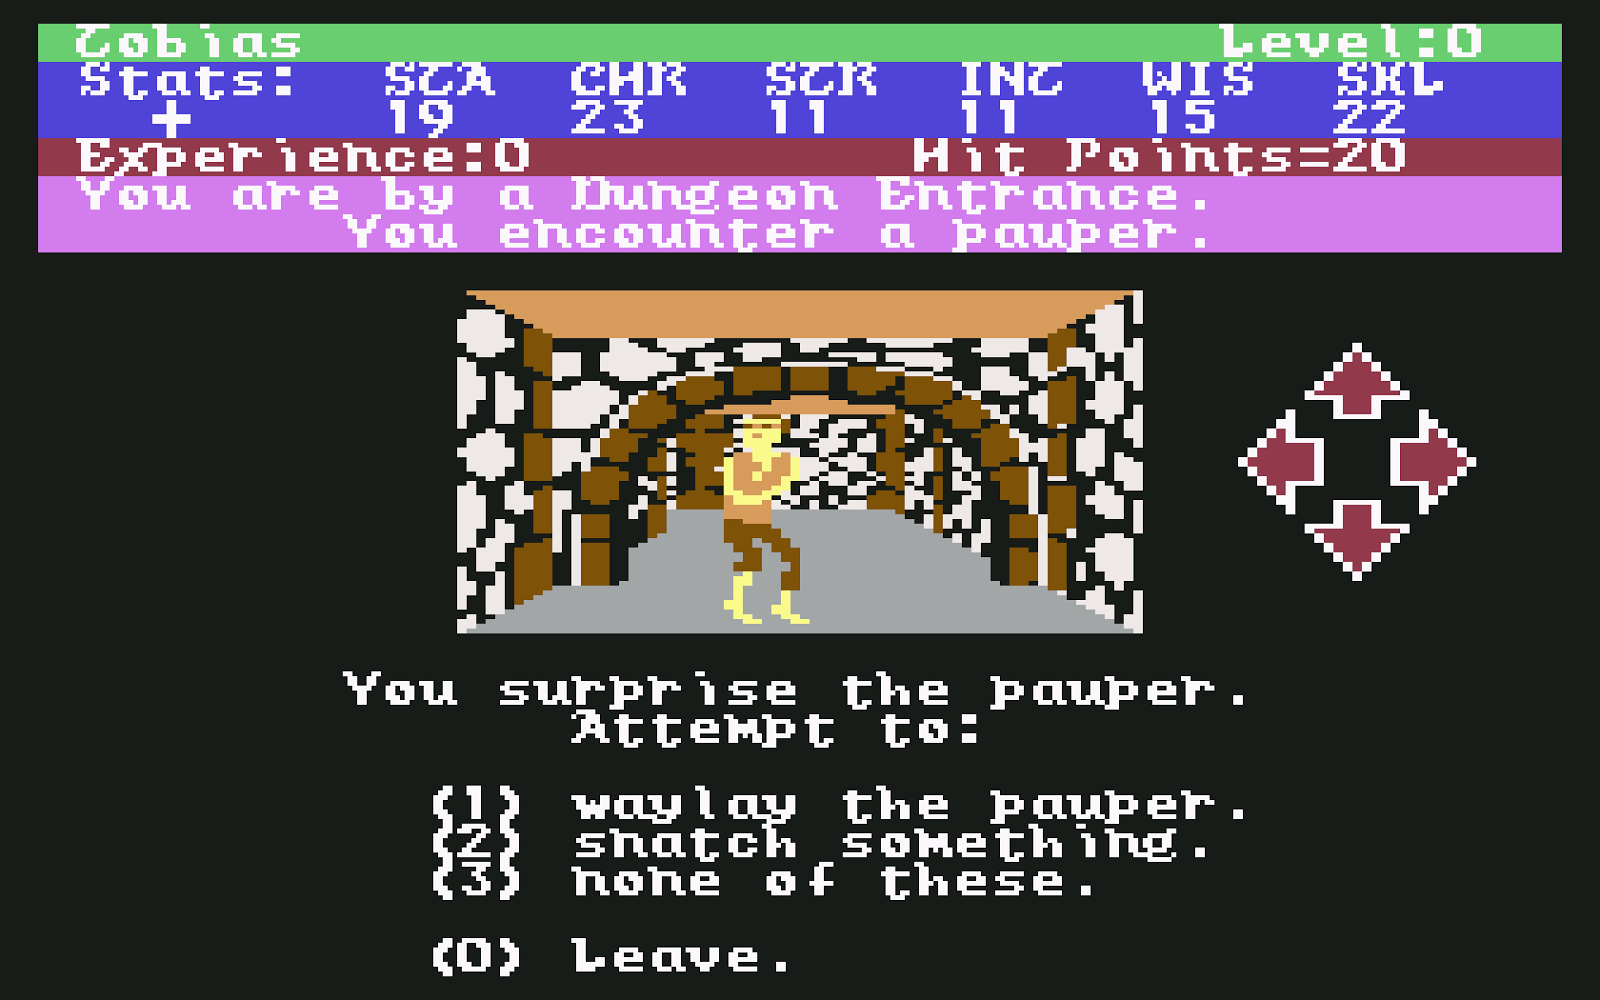 The Weary Adventurer: 5 underrated C64 CRPGs you should play